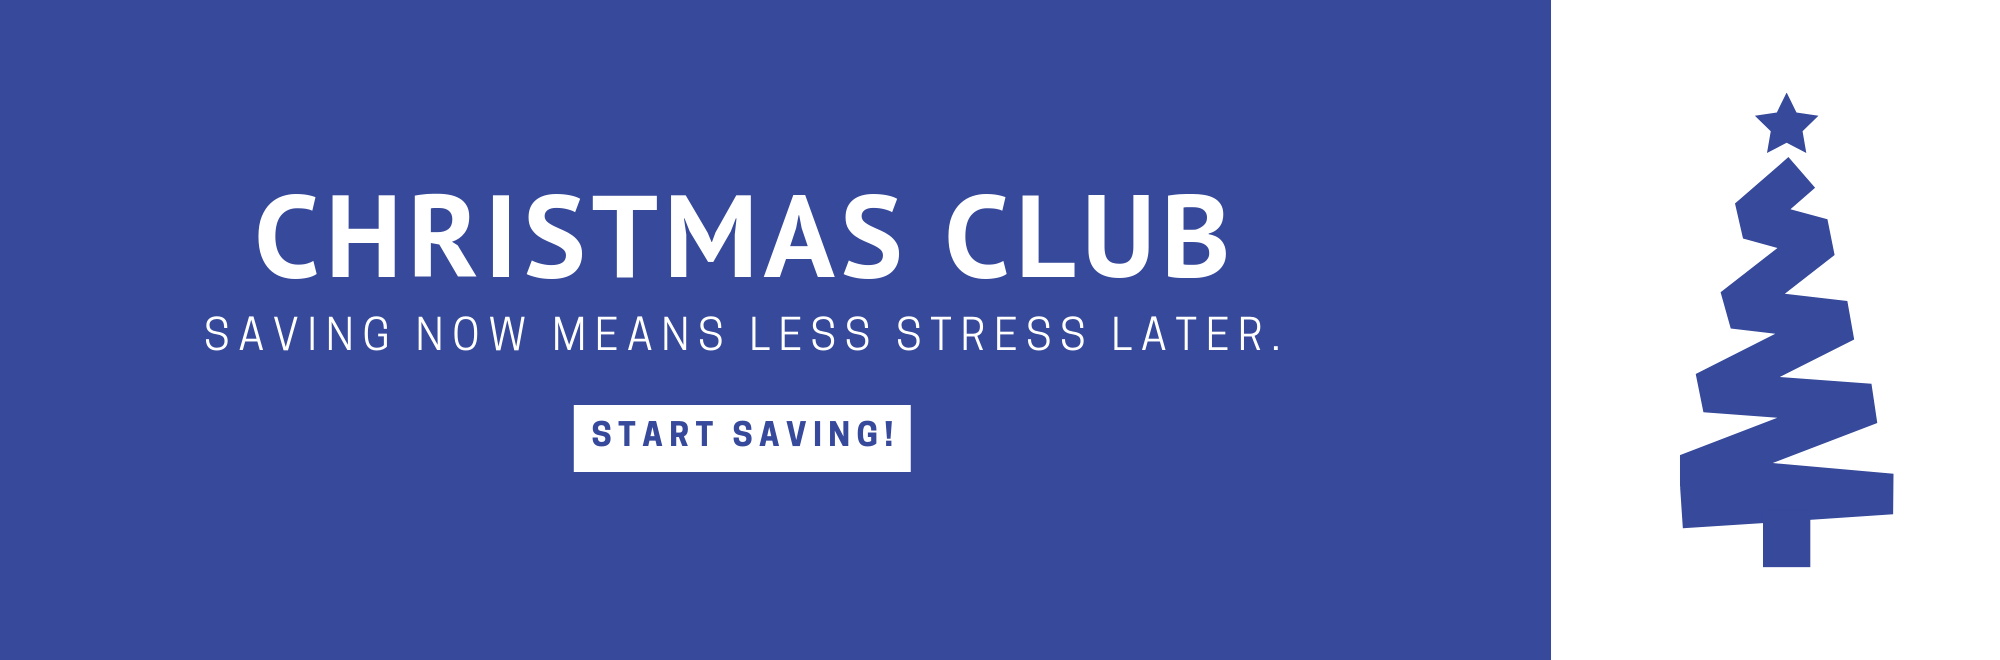 Saving now means less stress later with Christmas Club